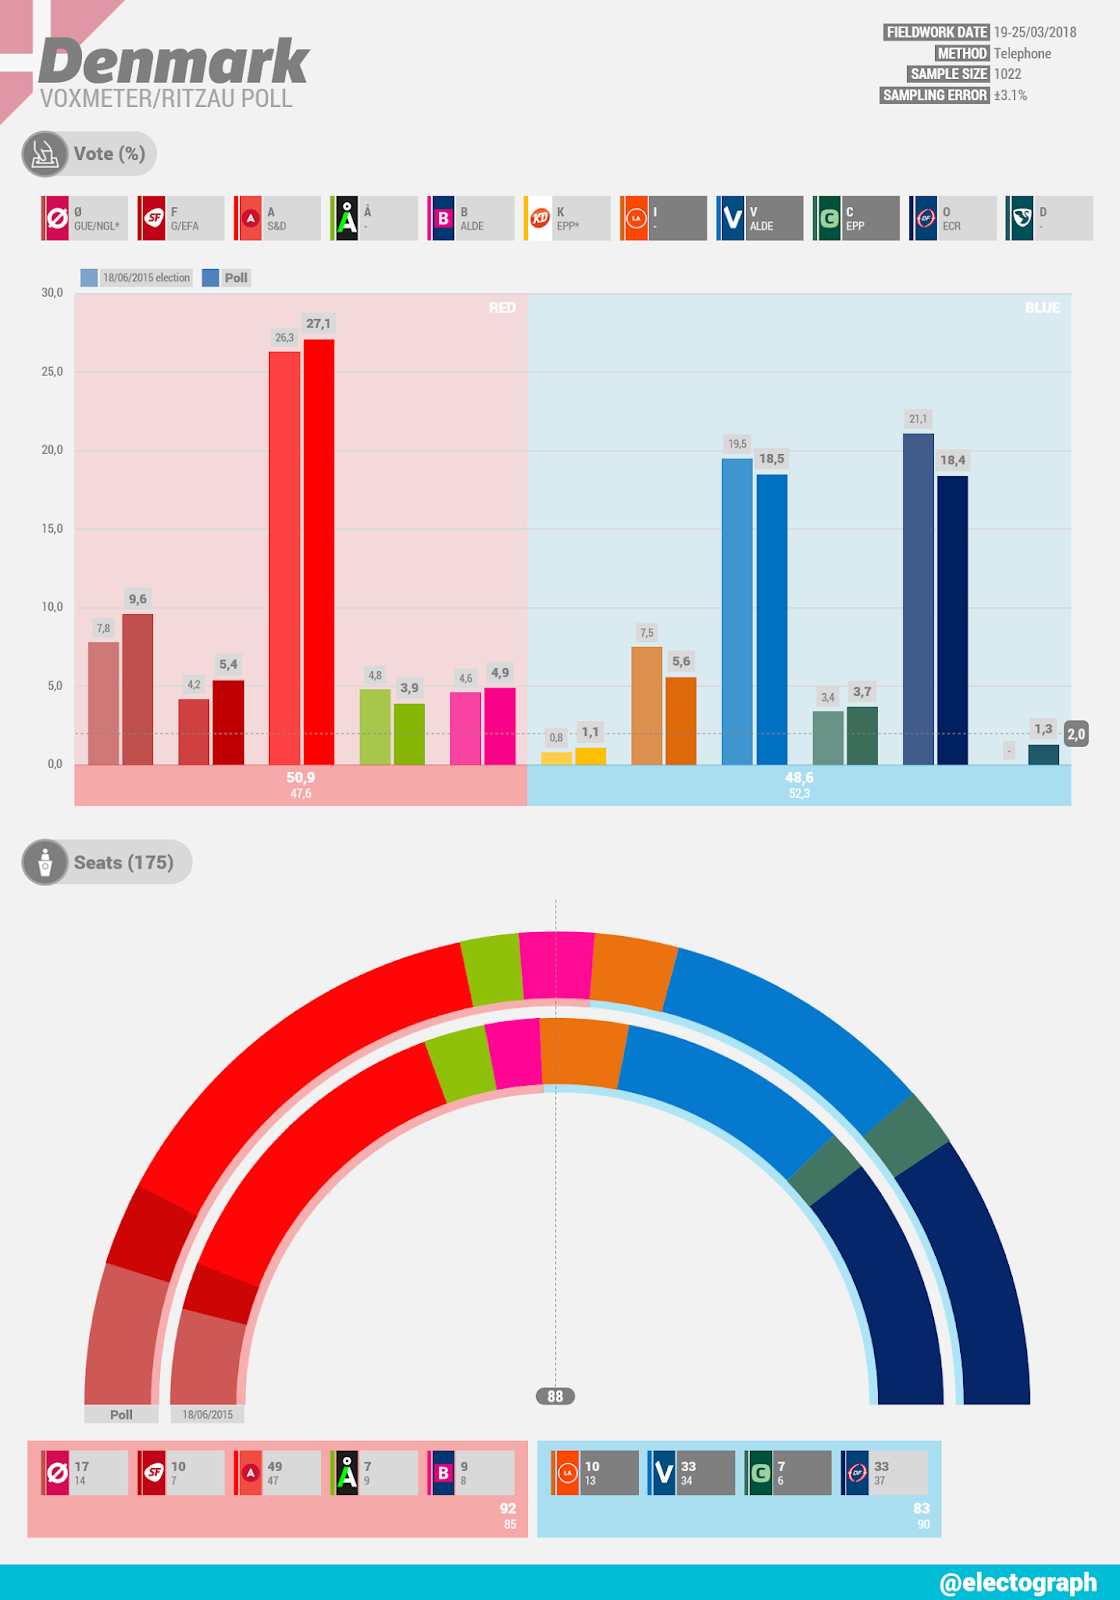 DENMARK Voxmeter poll chart for Ritzau, March 2018